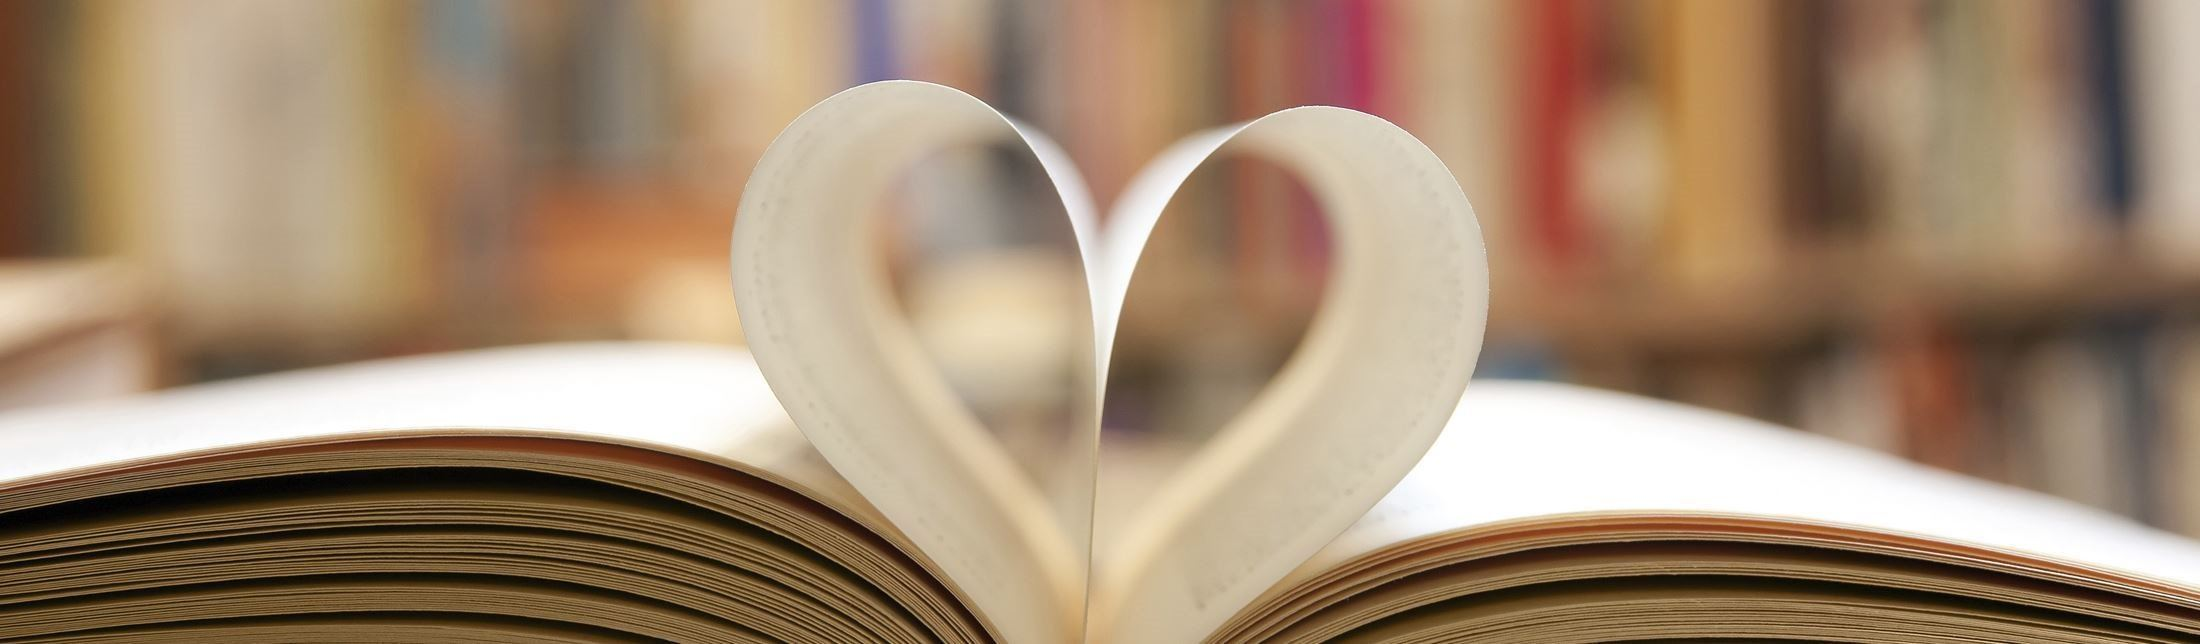 Pages of a book folded into heart